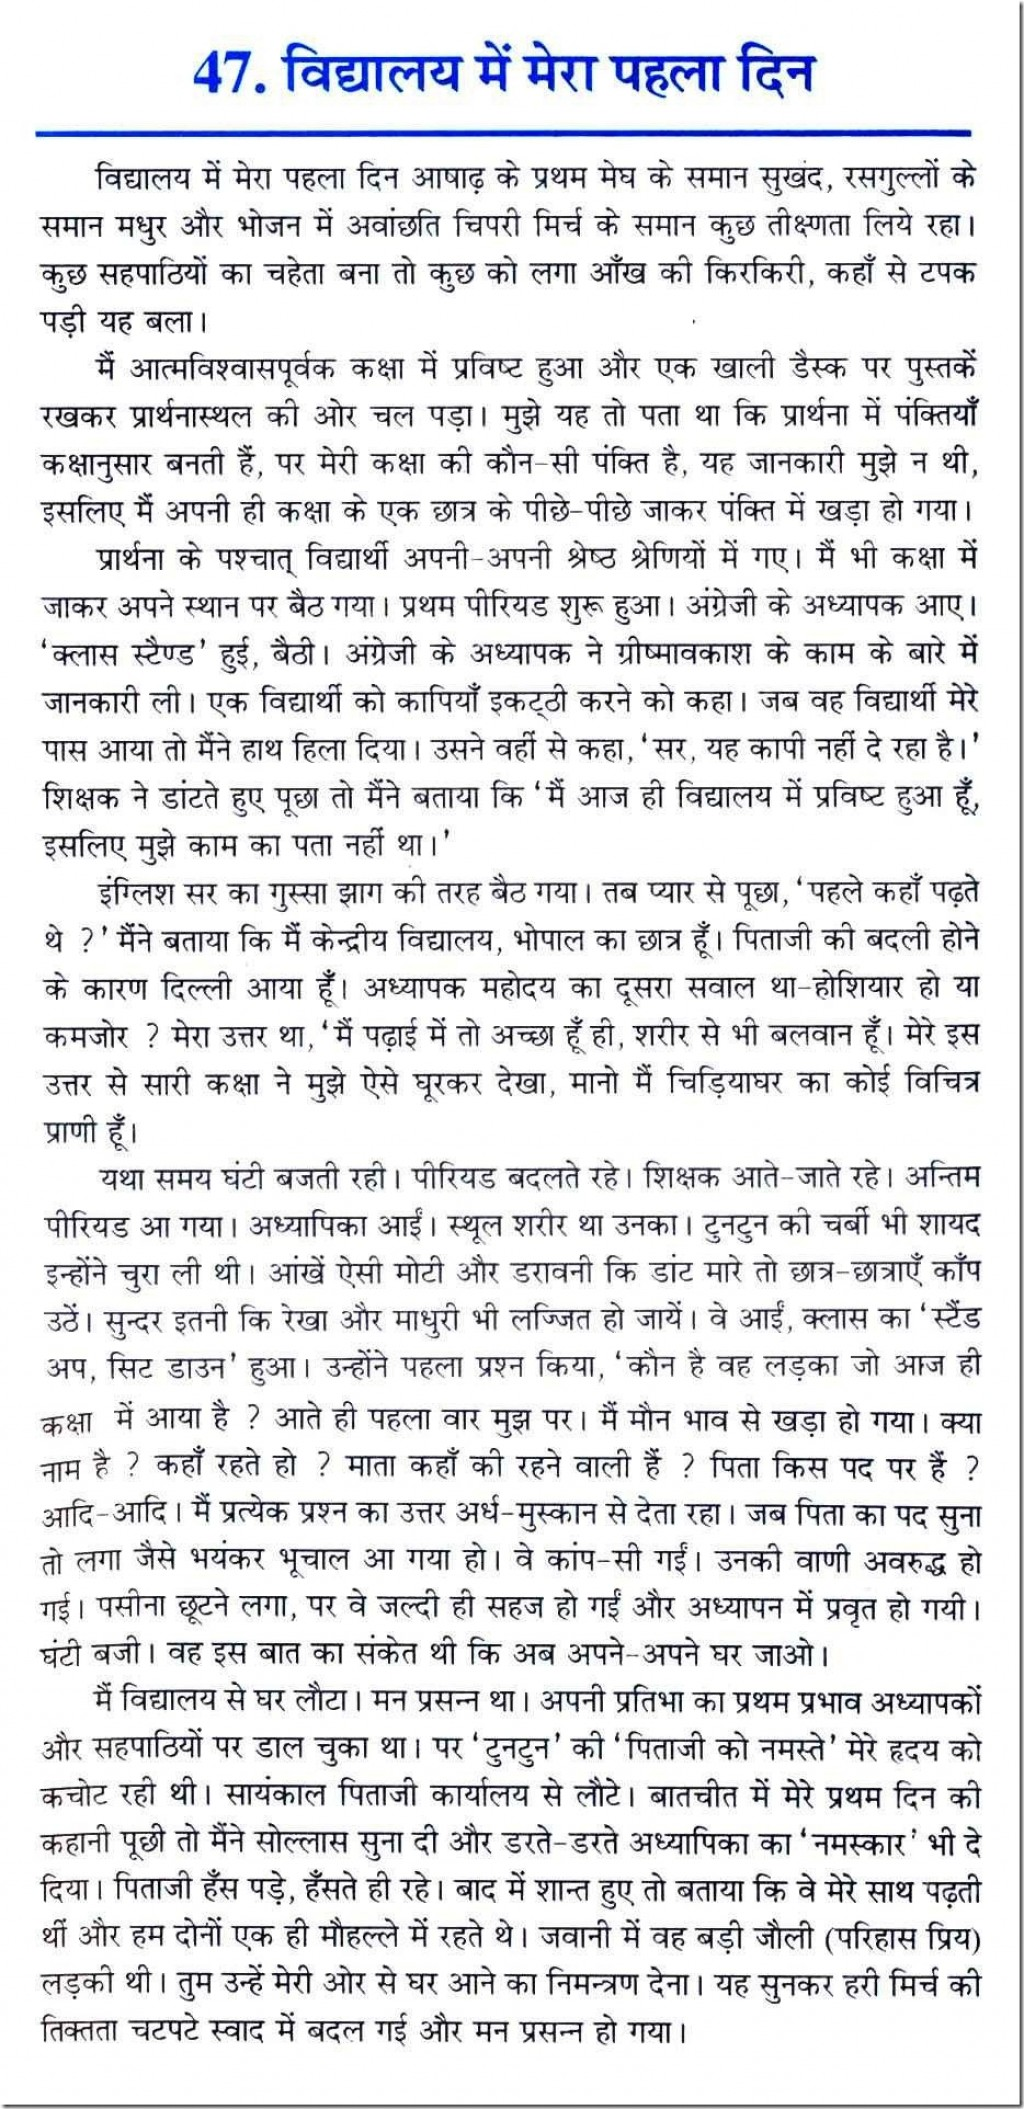 020 0020047 Thumb Short Essay On Leadership Awesome About Experience Transformational In Hindi Large